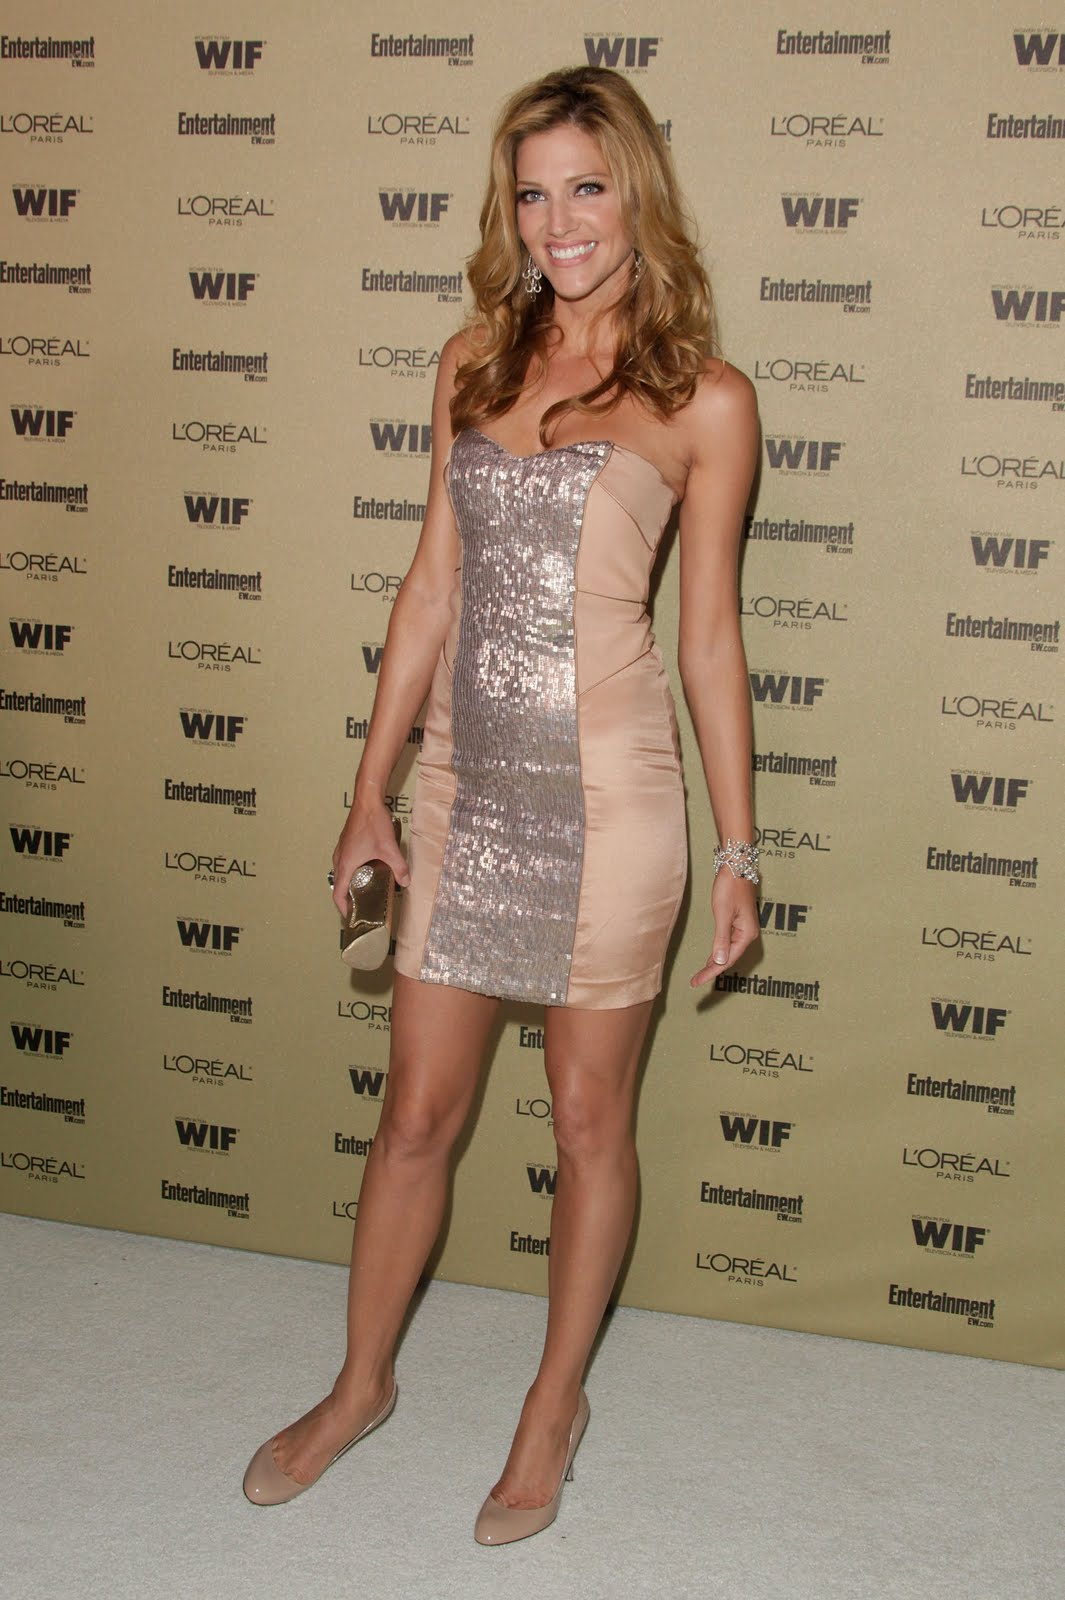 Tricia Helfer Women In Film Pre Emmy Party 006 123 641lo This is what you get when you add together 5 nights of inadequate sleep, ...